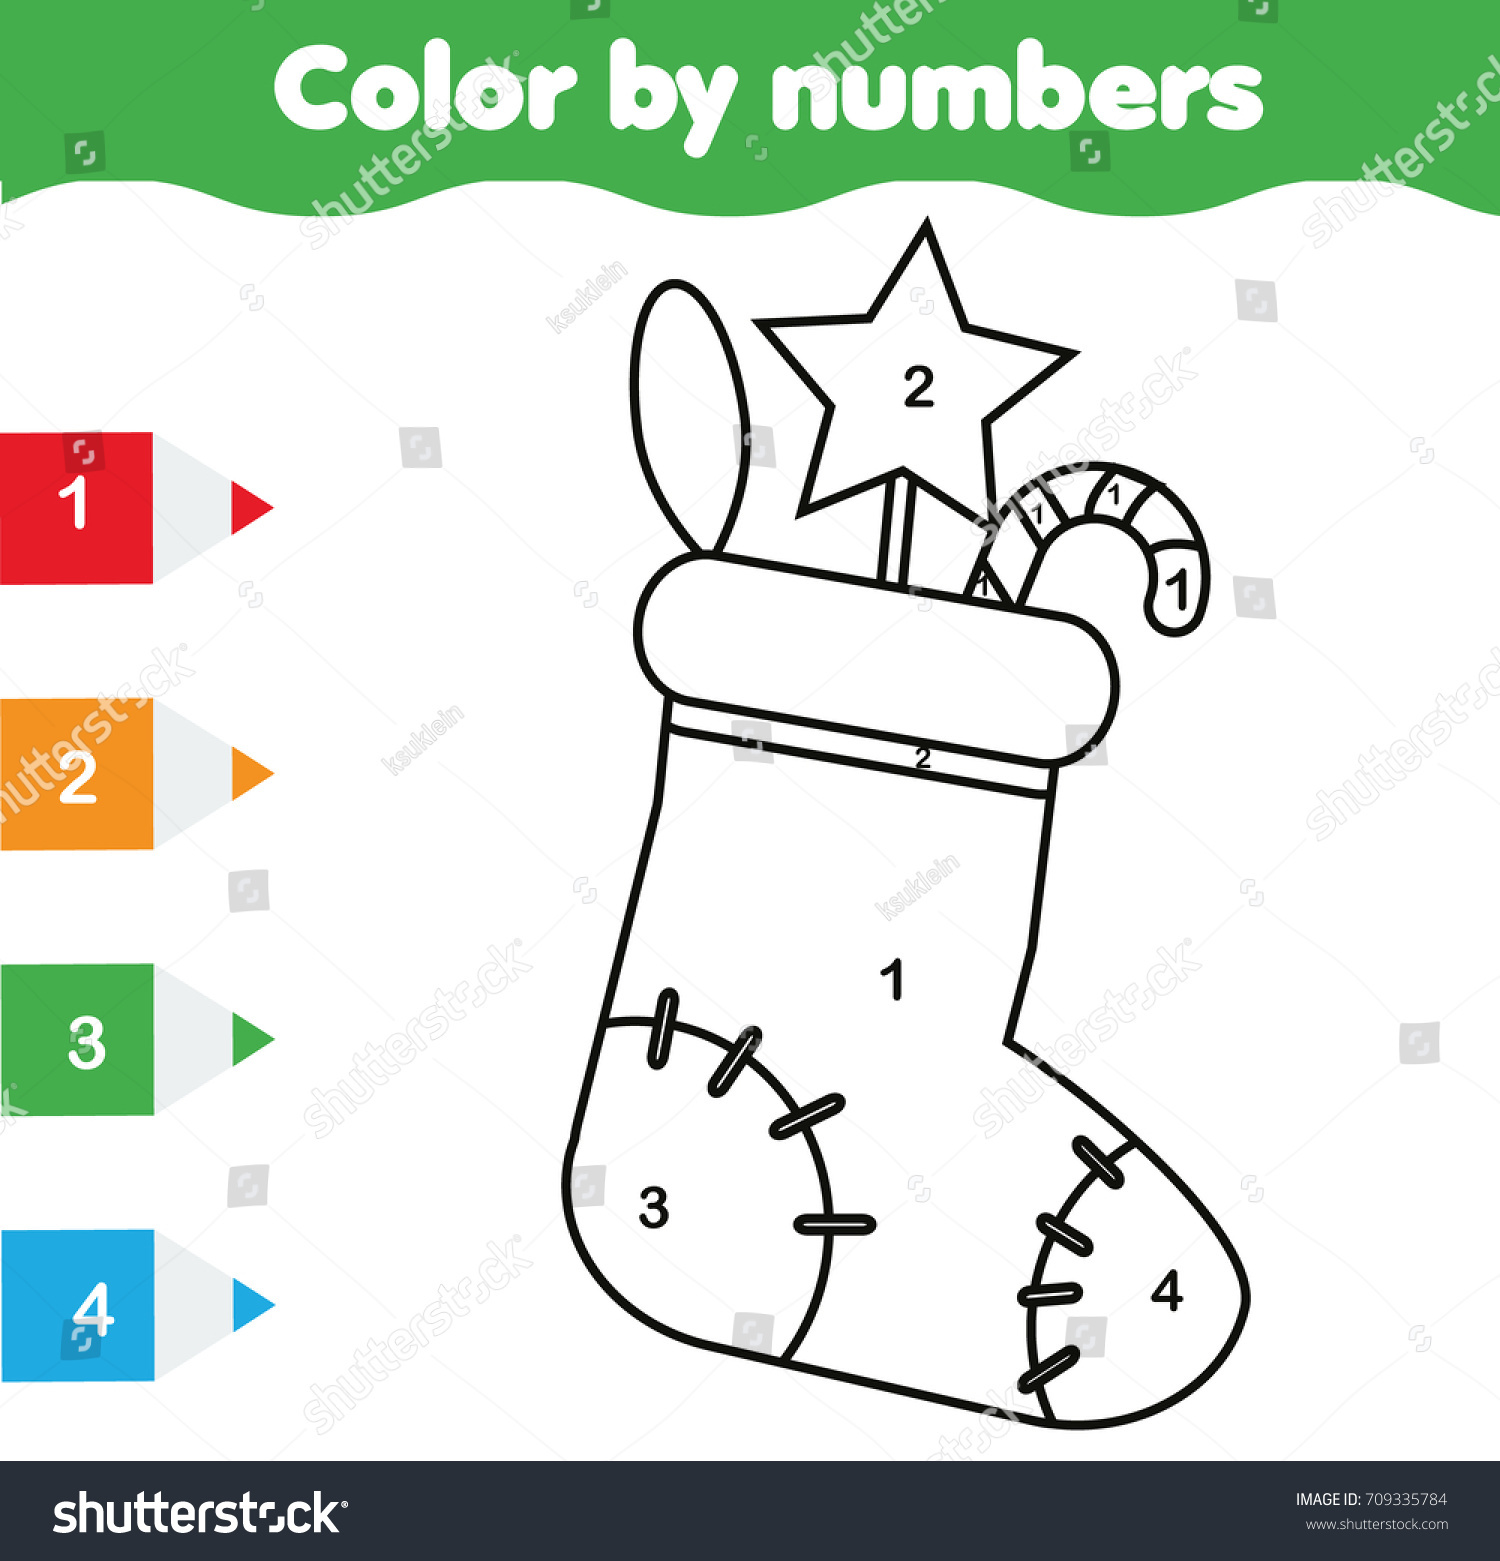 Coloring Page With Christmas Sock Color By Numbers Educational Children Game Drawing Kids Activity